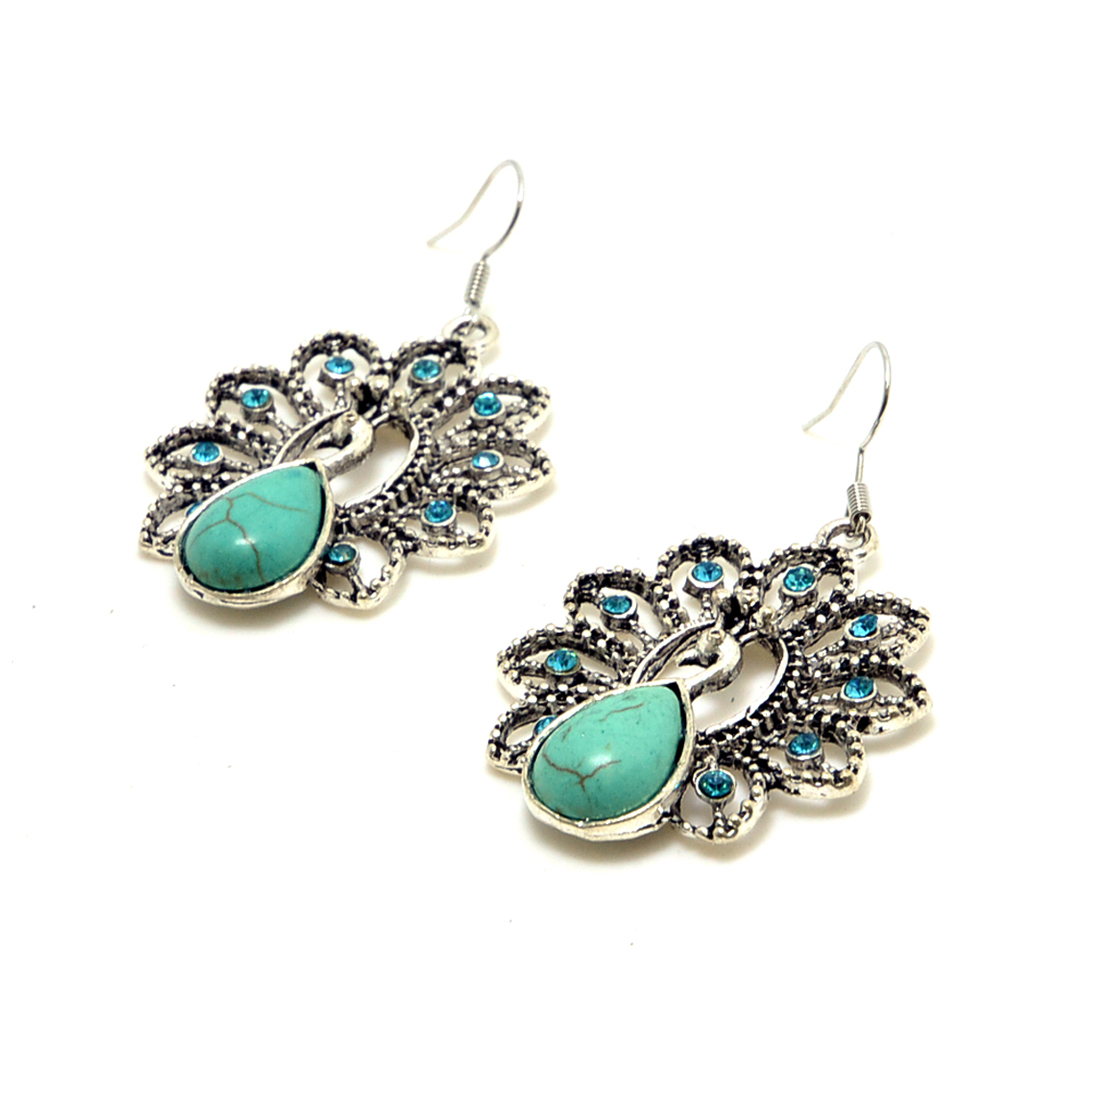 Turquoise Peacock Earrings with Aqua Blue Rhinestones